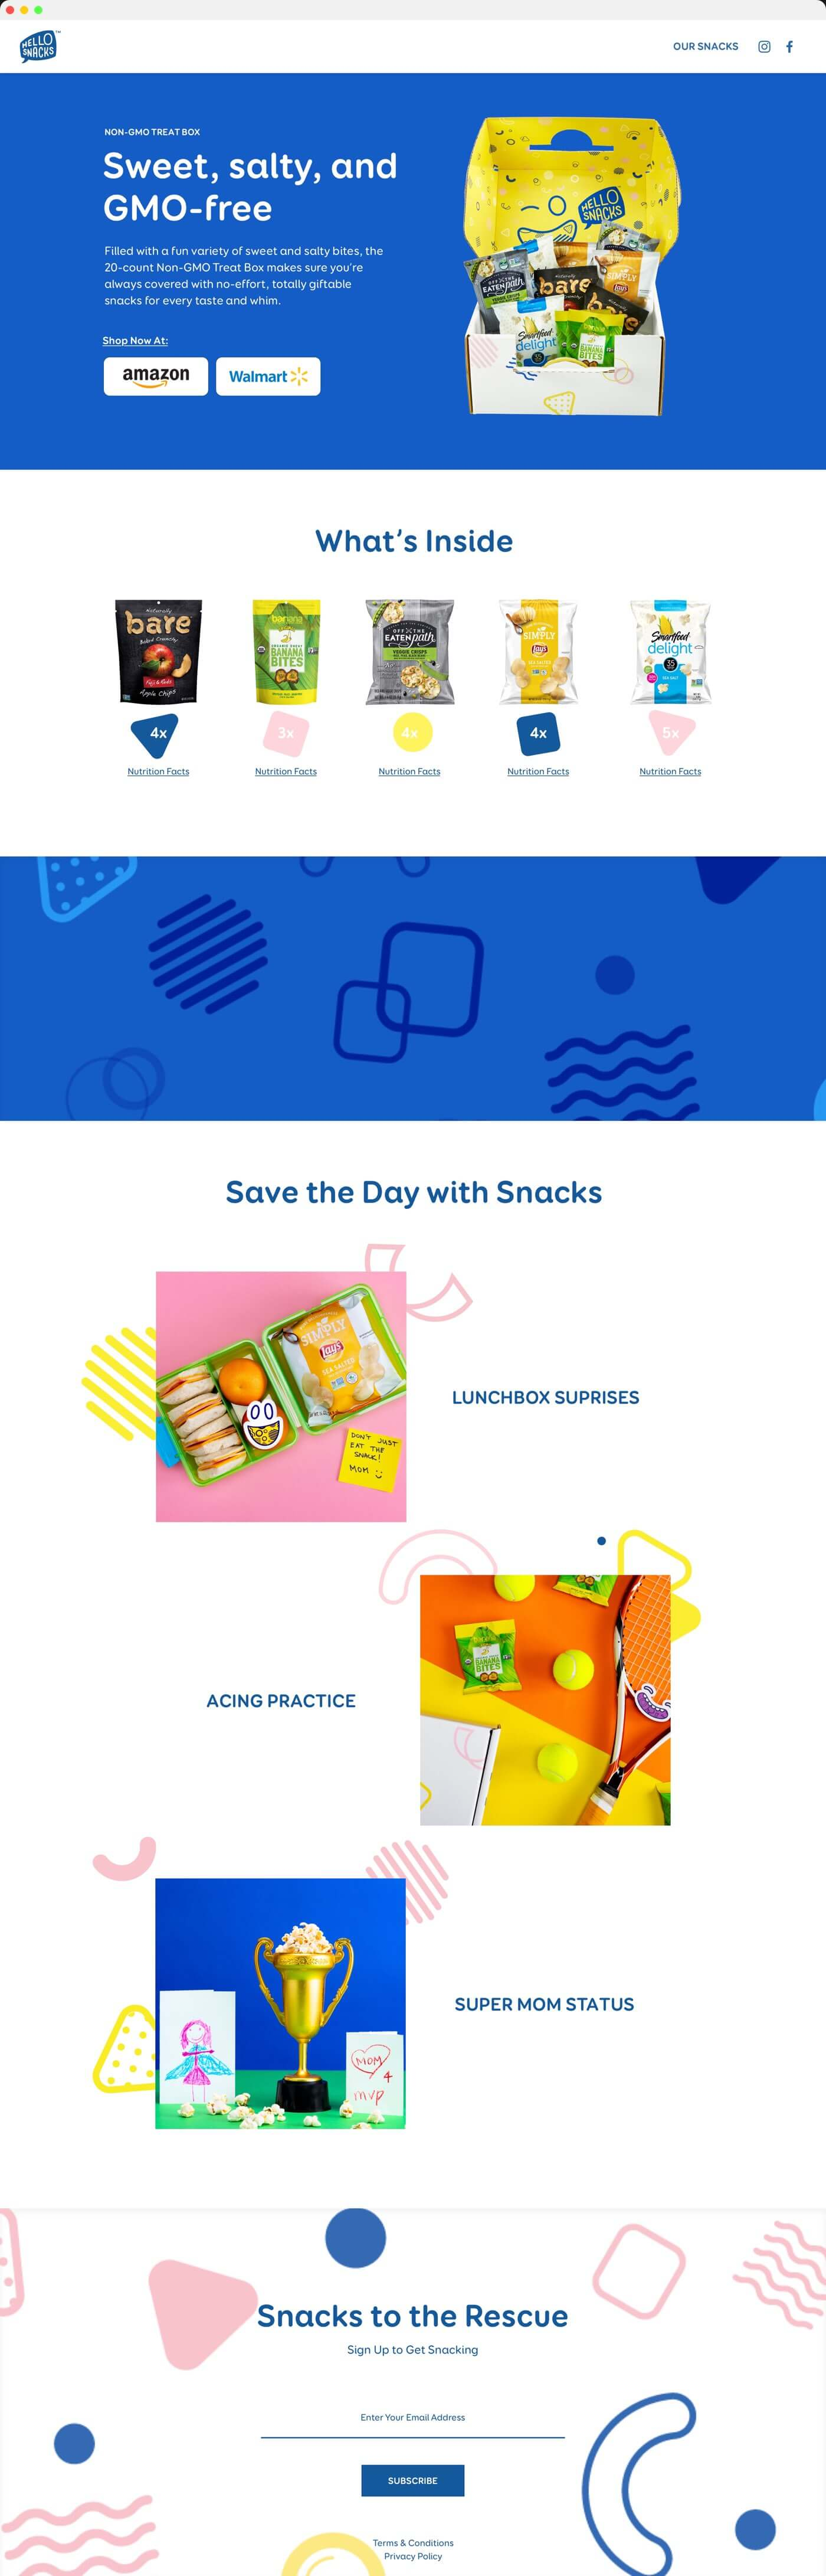 HelloSnacks Shopify E-commerce Website Design